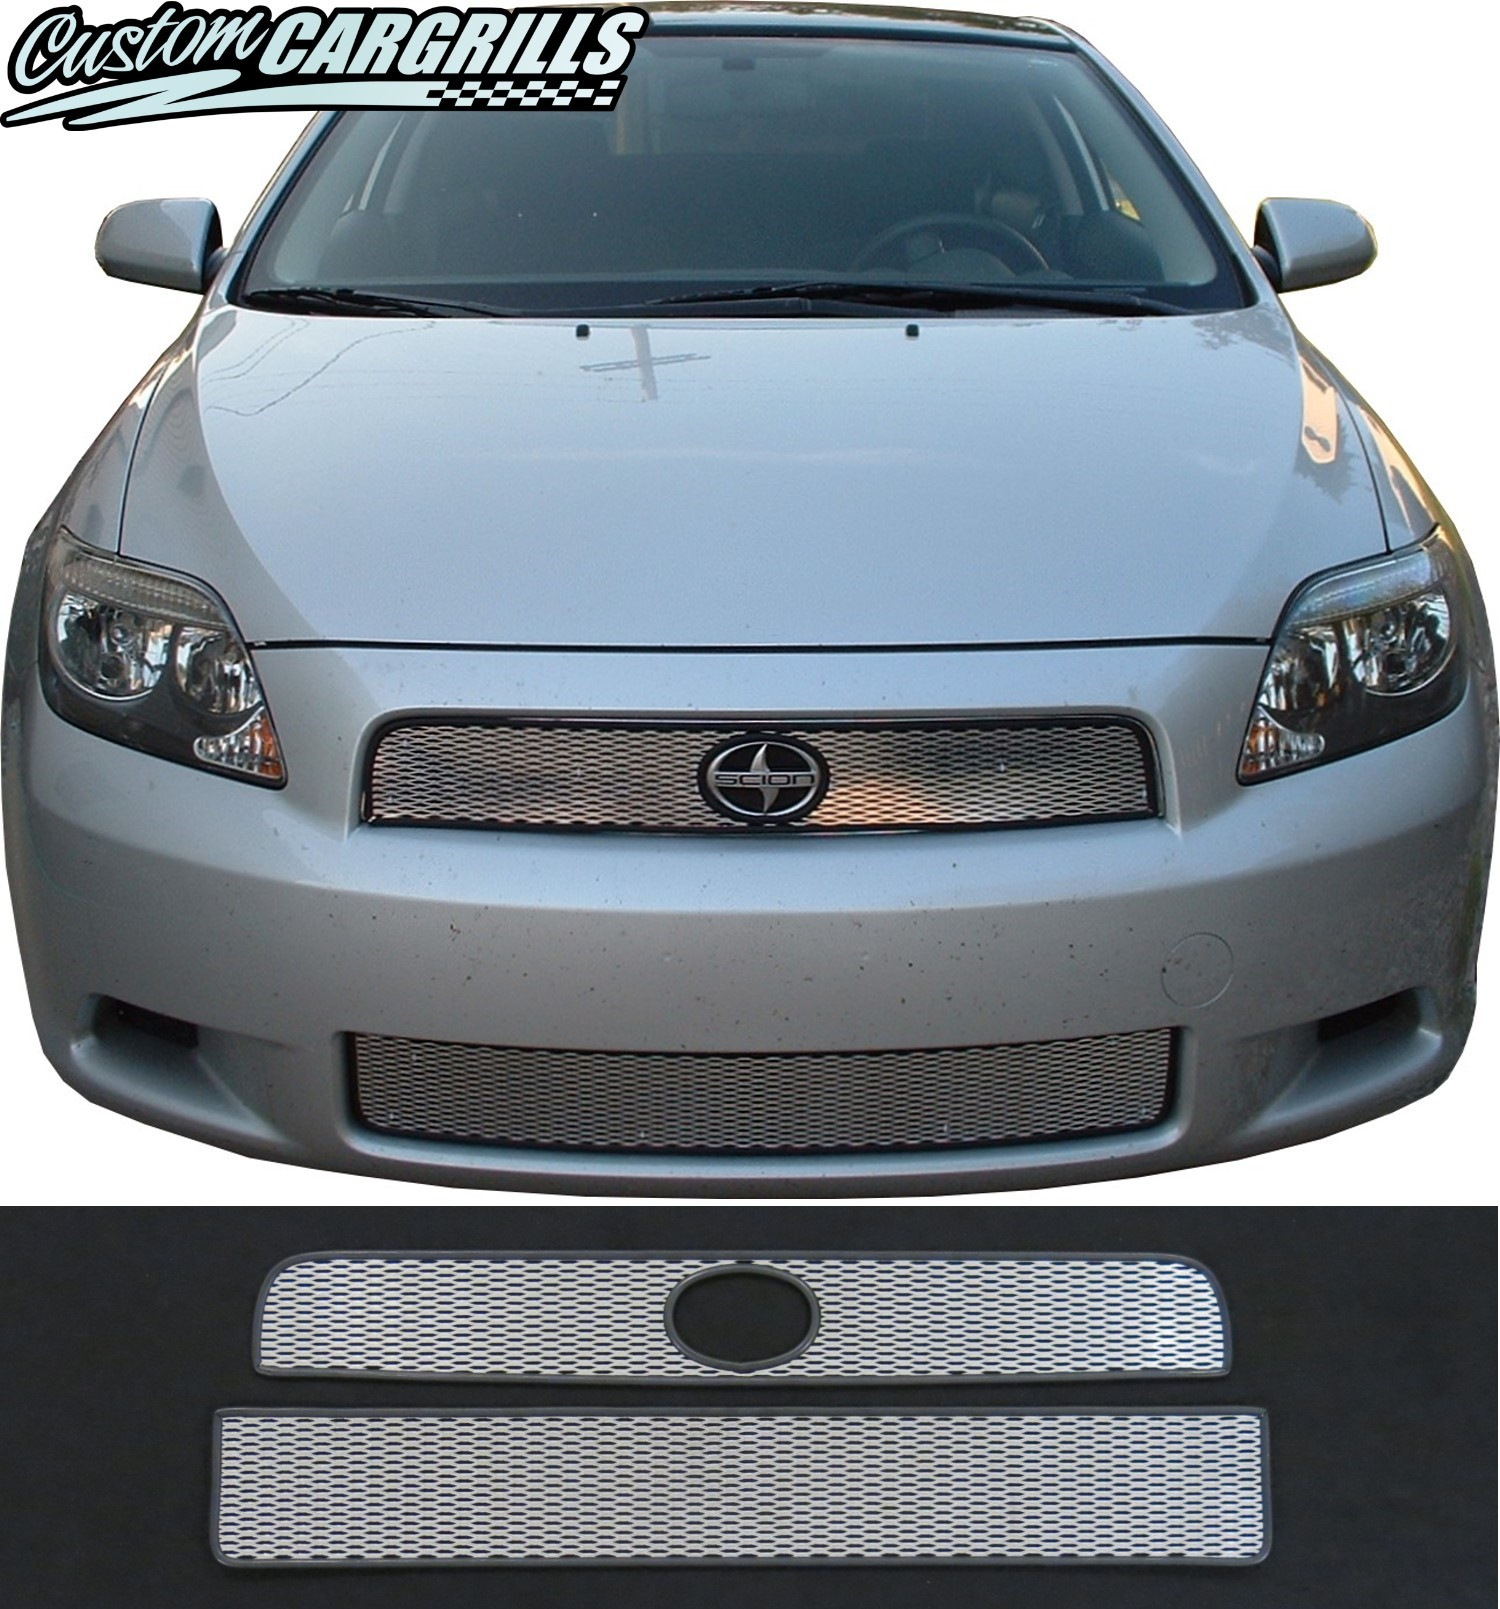 Custom Grill Mesh Kits for Scion Vehicles by customcargrills.com